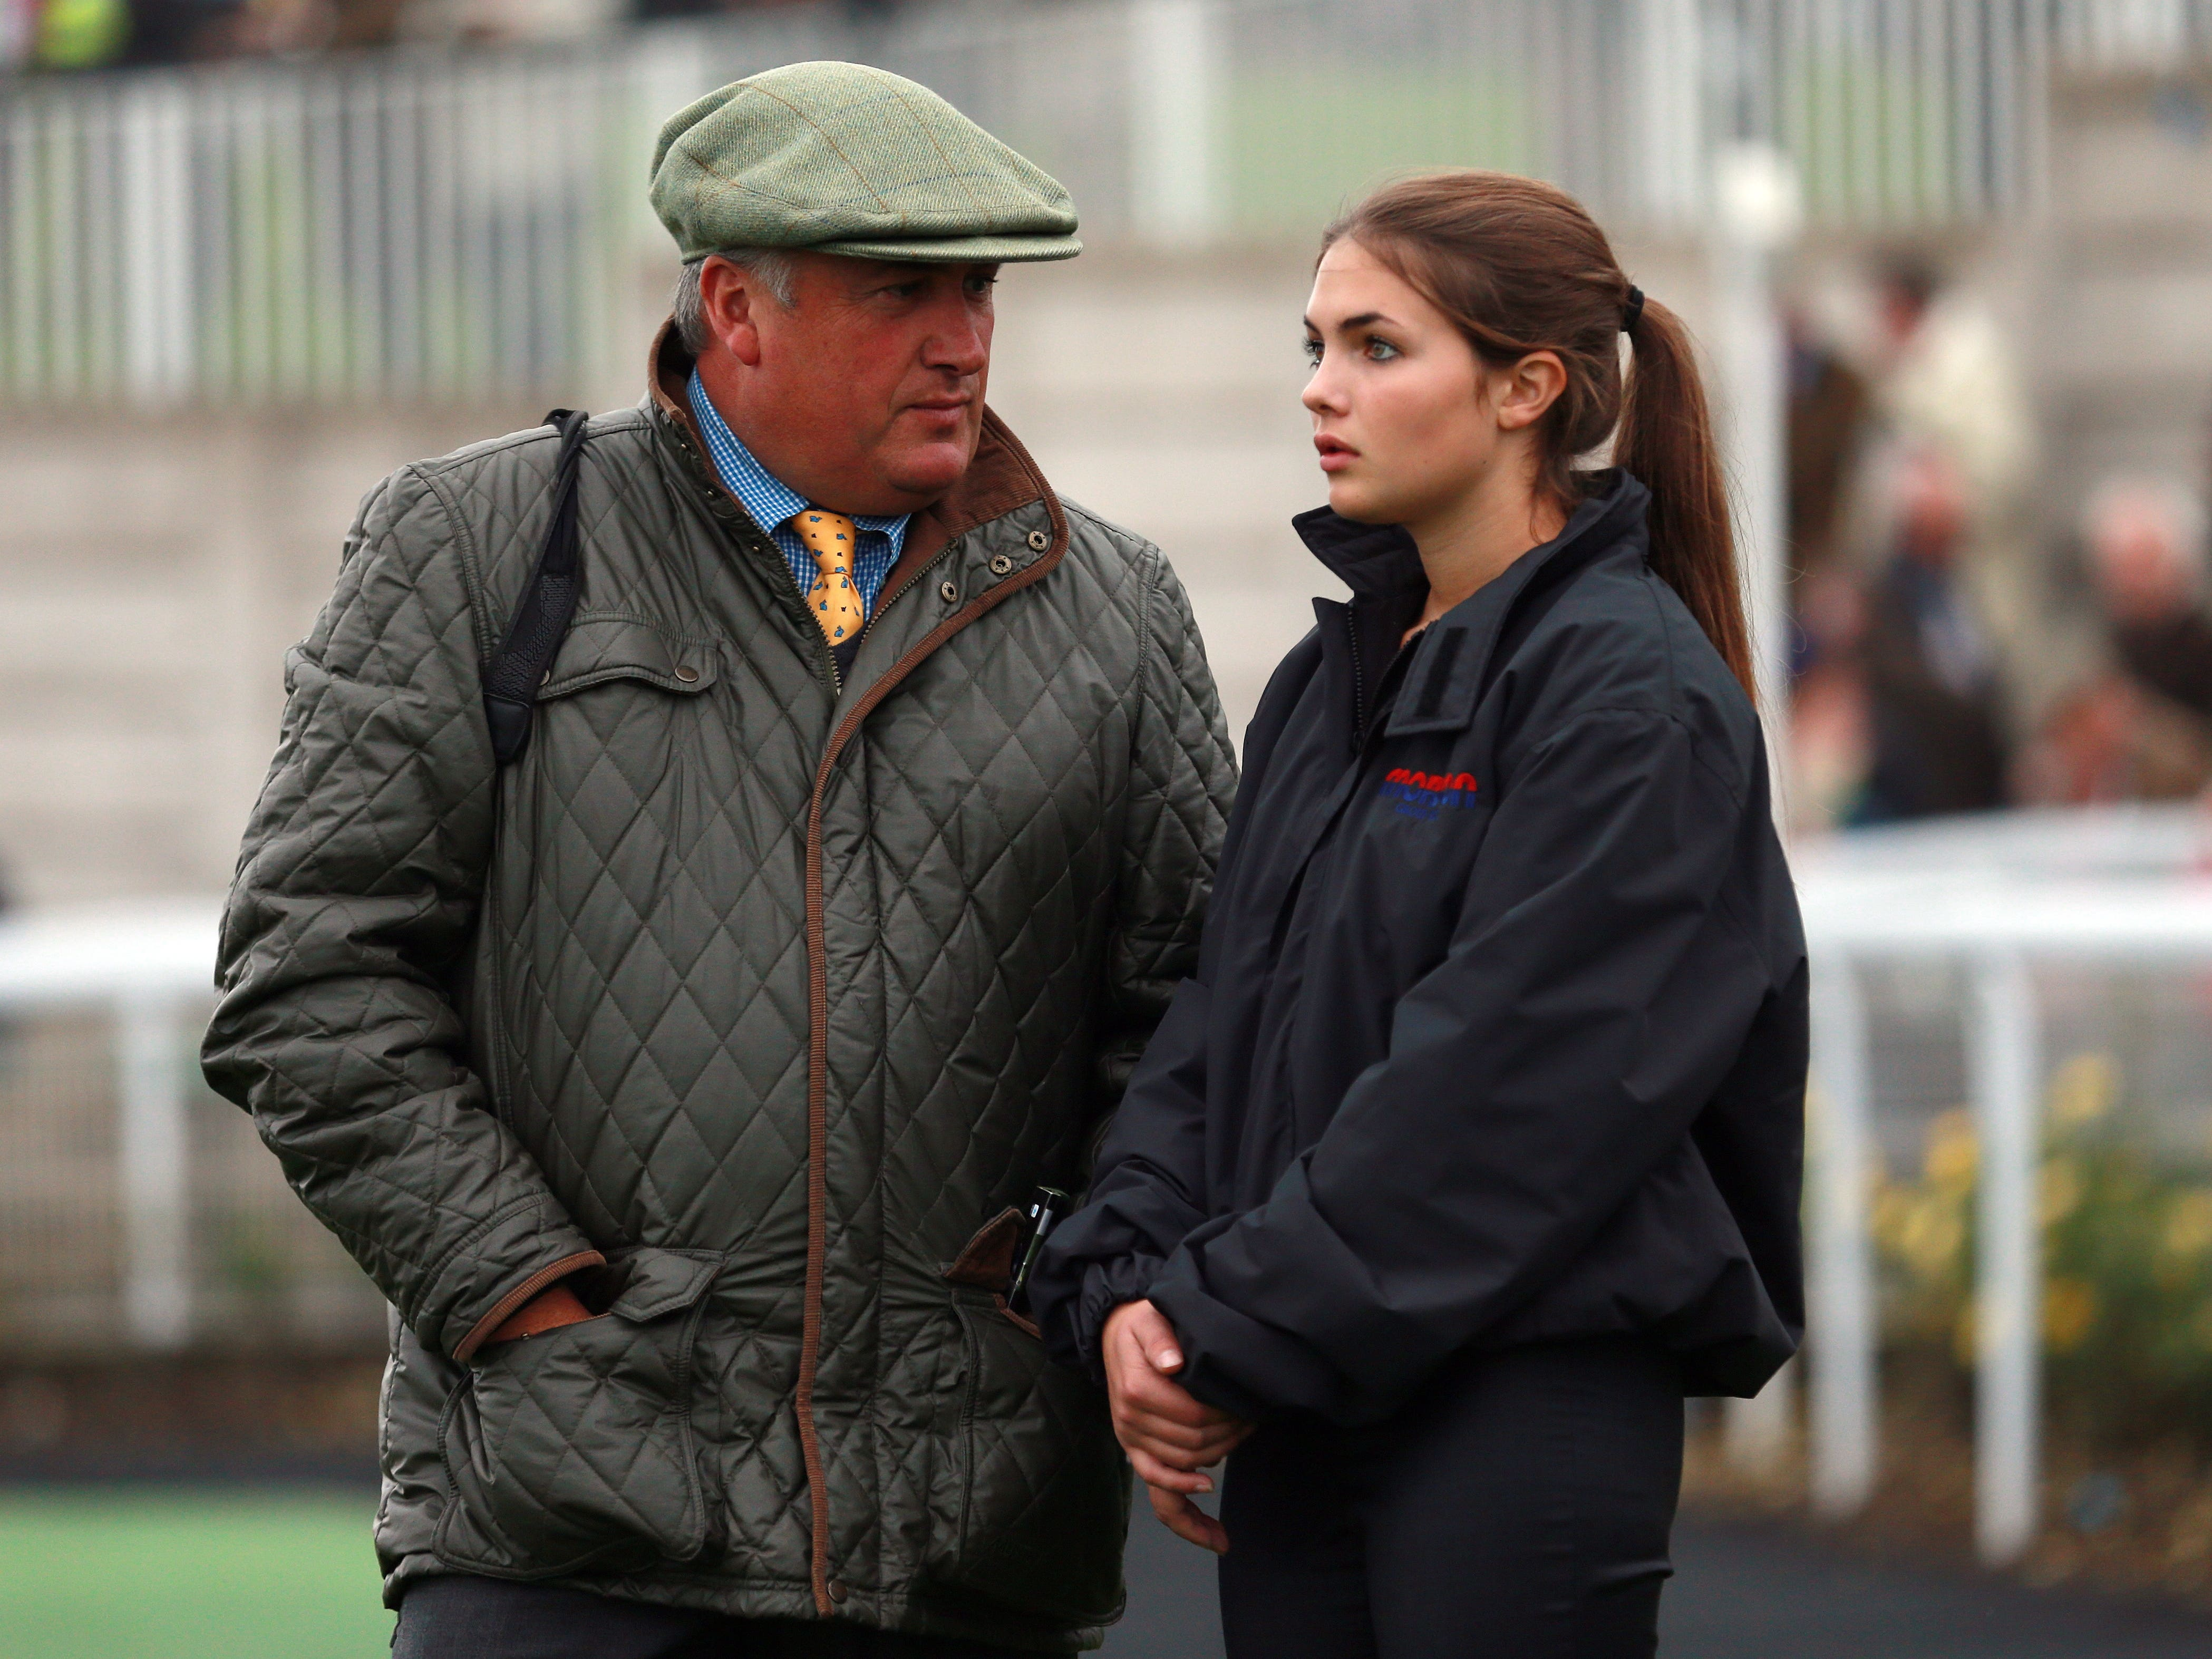 Paul Nicholls will team up with his daughter Megan in the November Handicap (David Davies/PA)